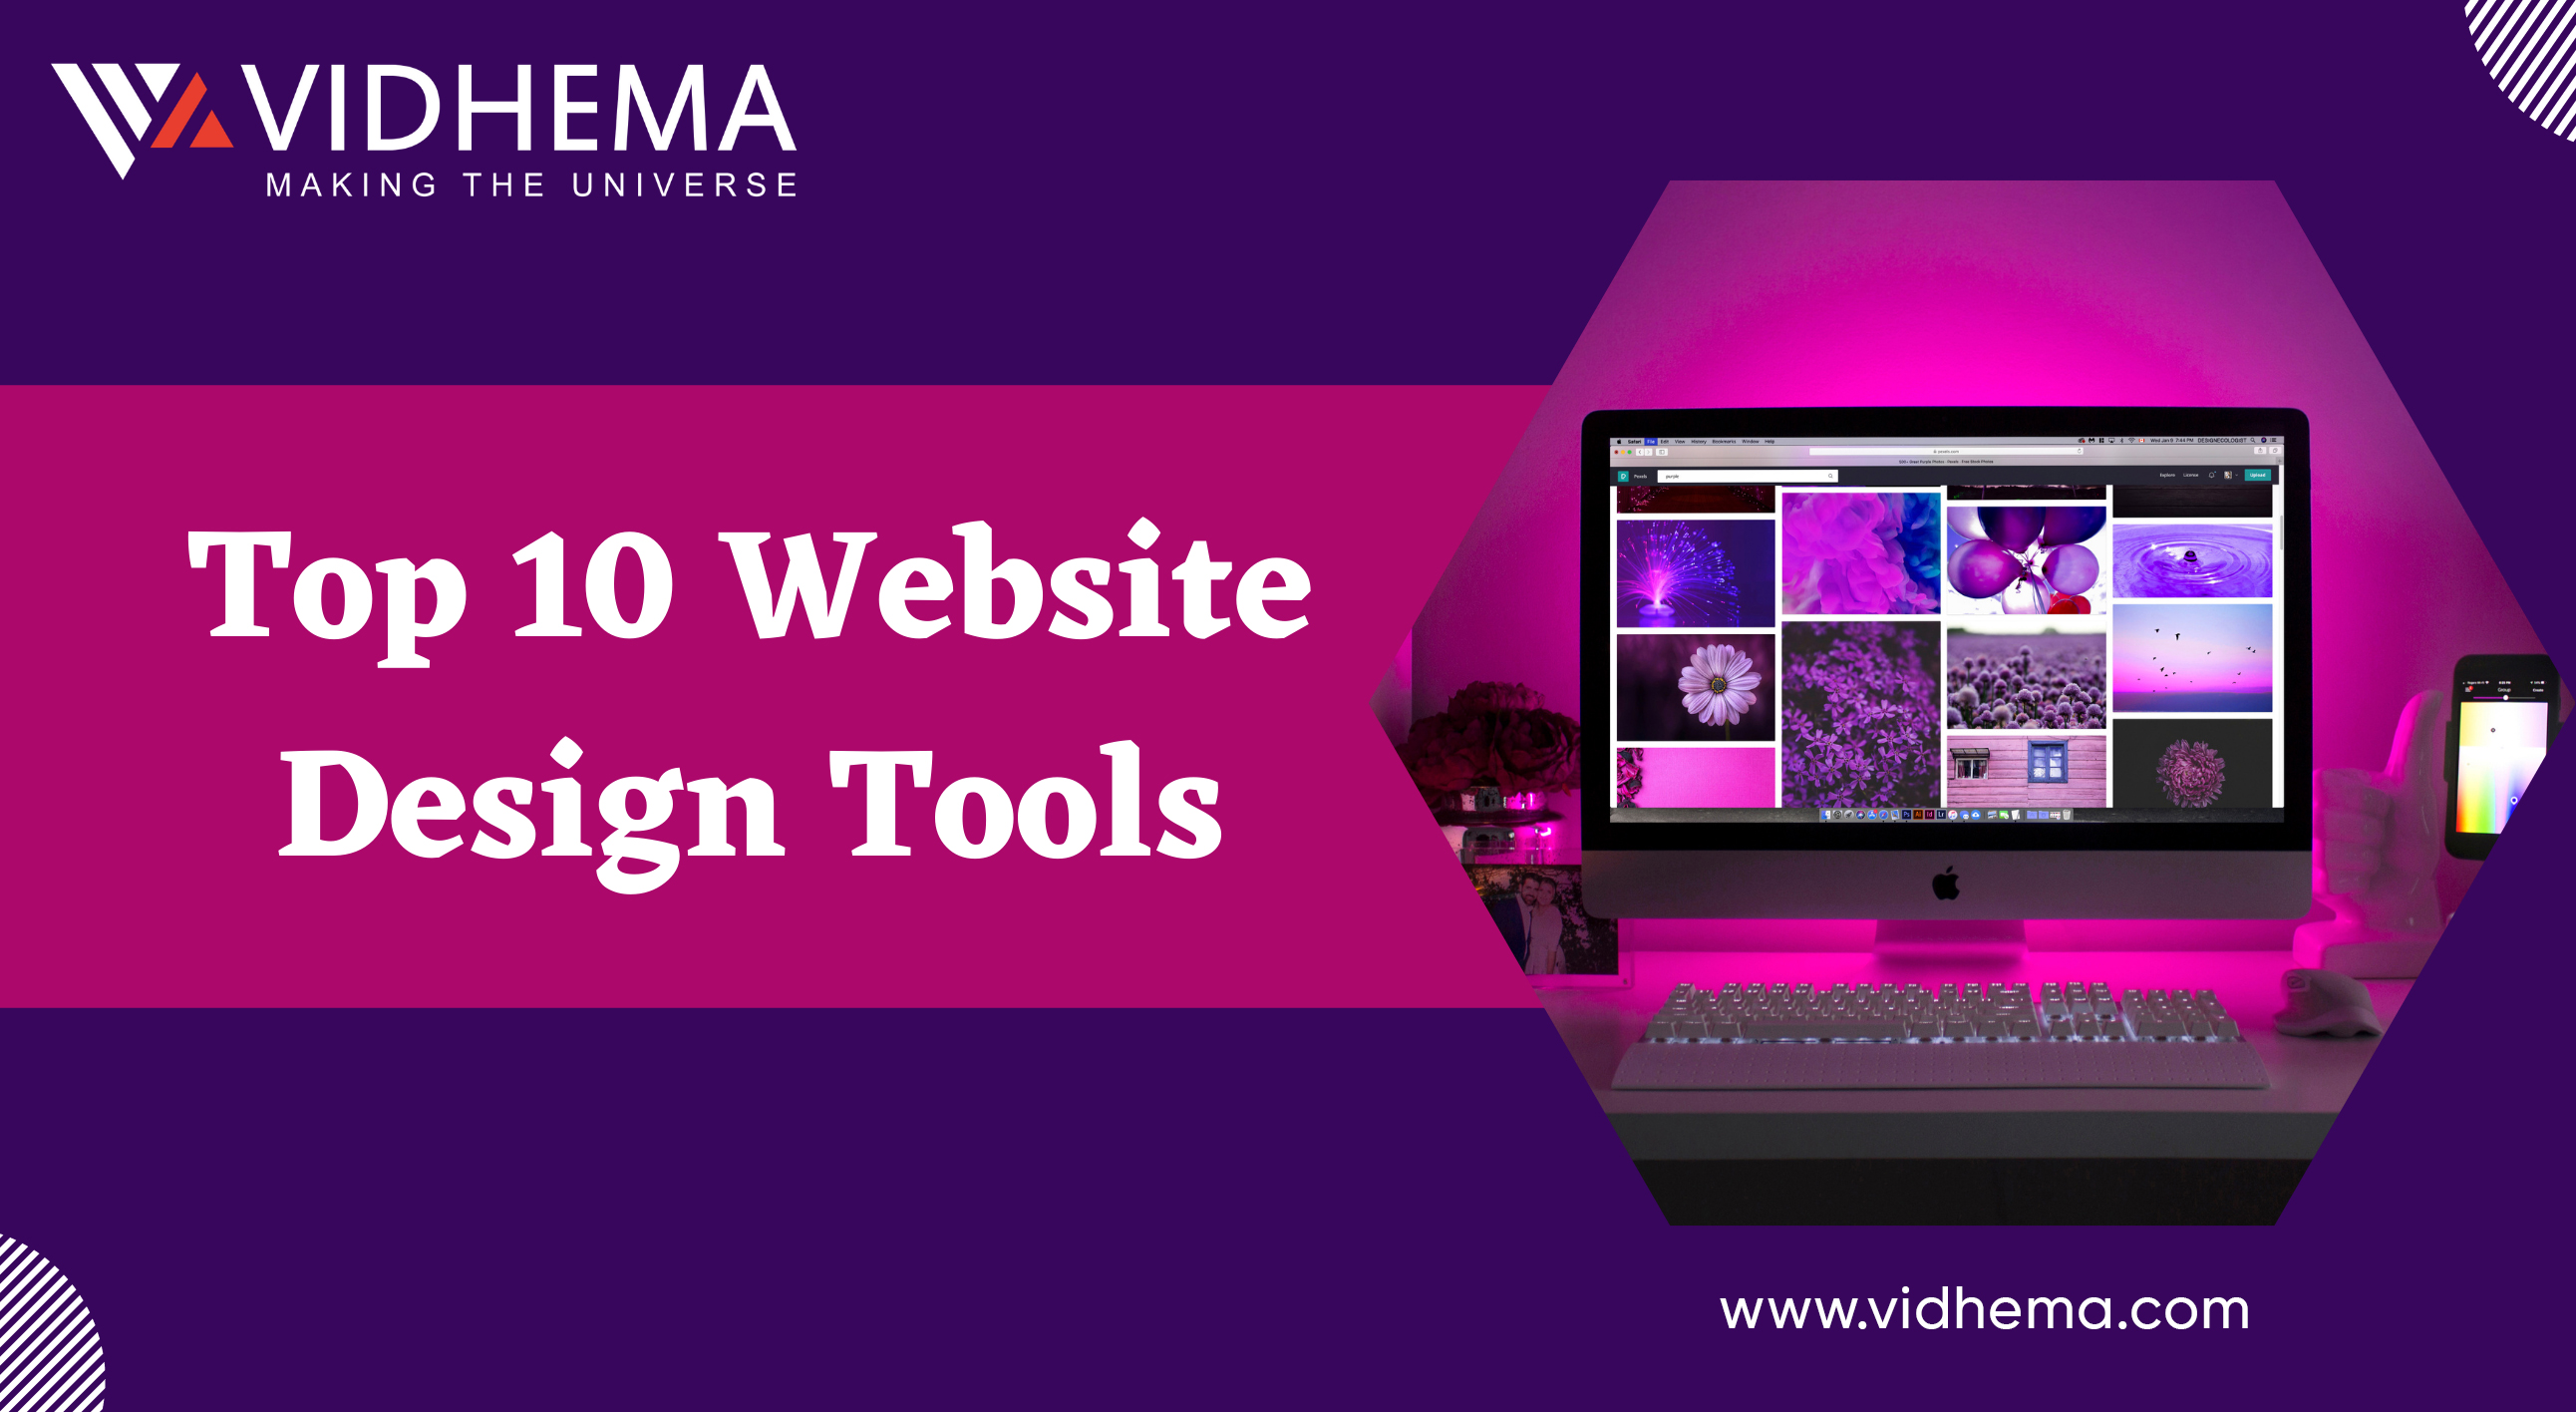 Top 10 Website Design Tools 2021 (Free & Paid)